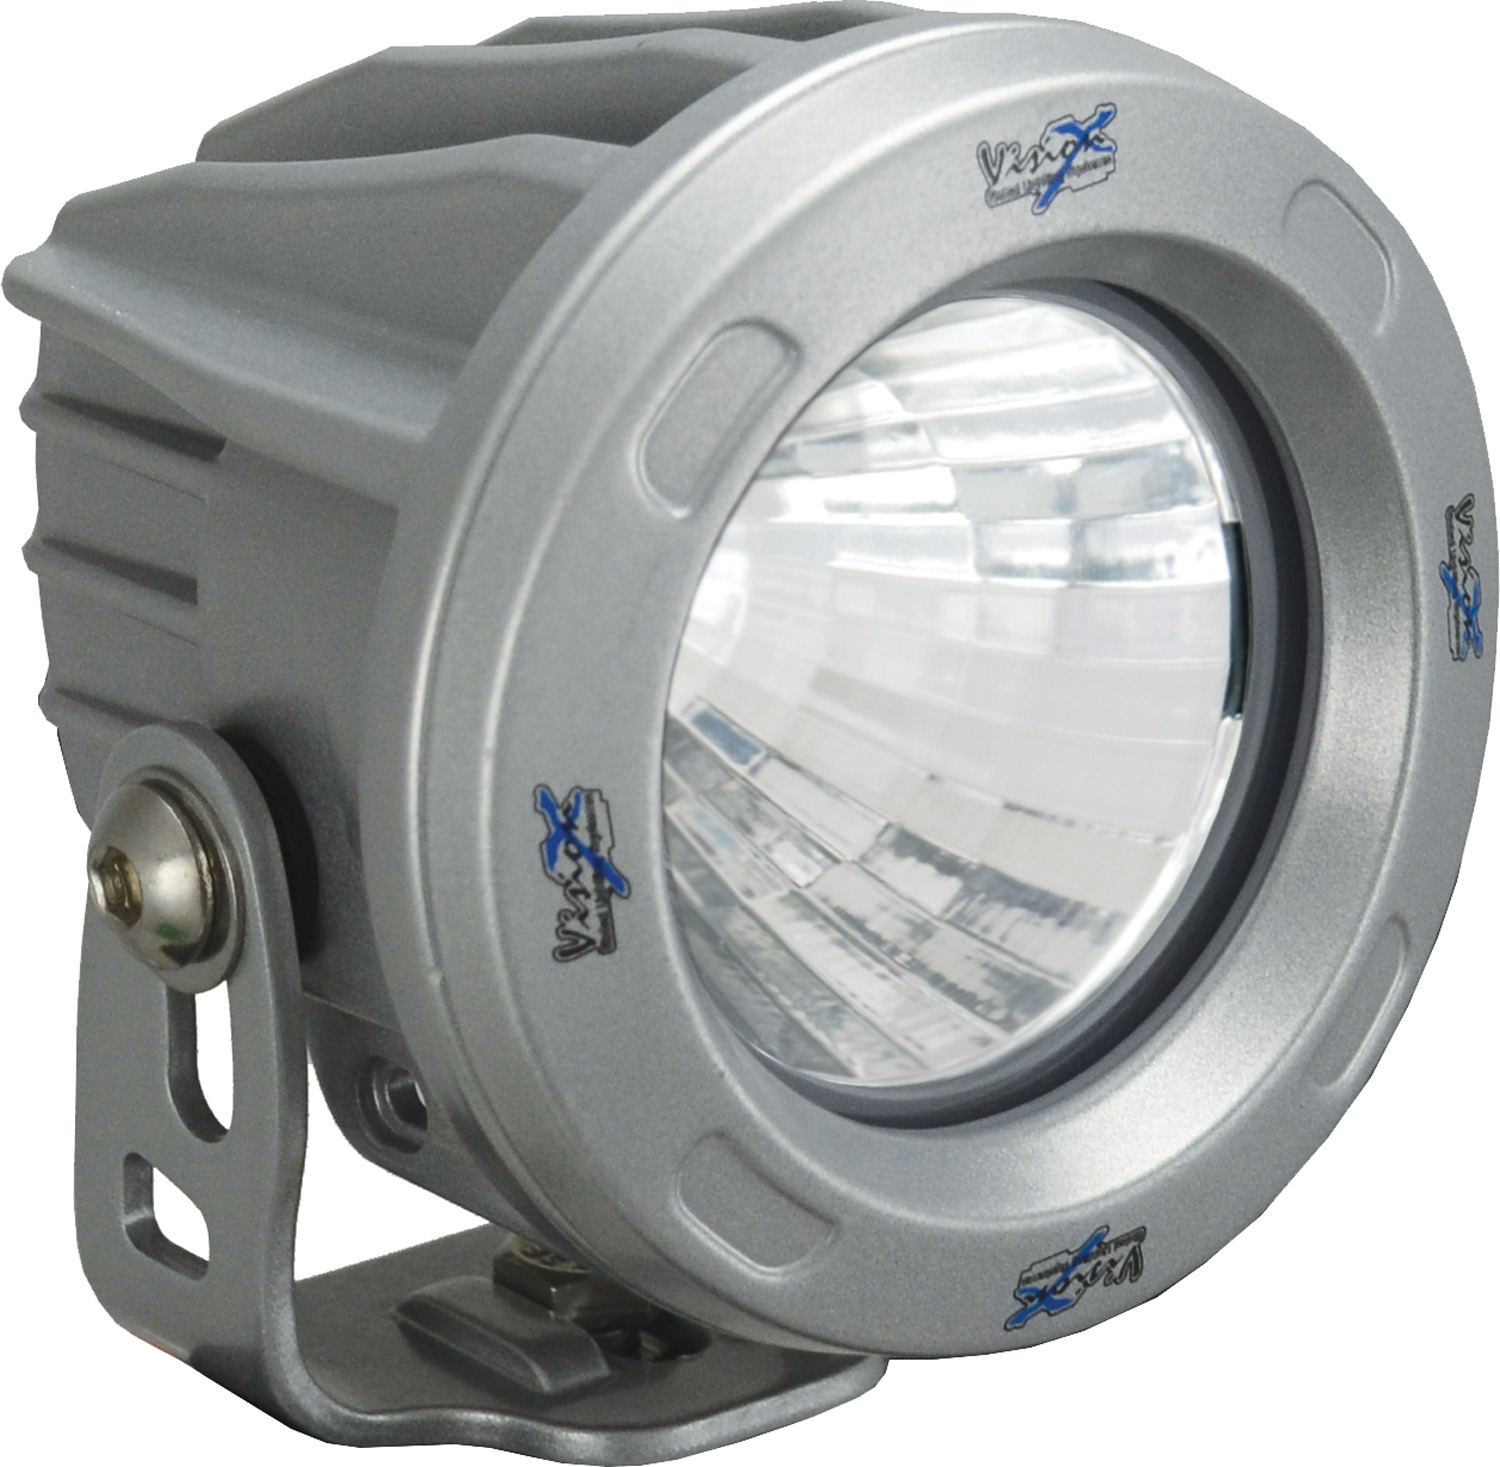 OPTIMUS ROUND SILVER 1 10W LED 20ç MEDIUM